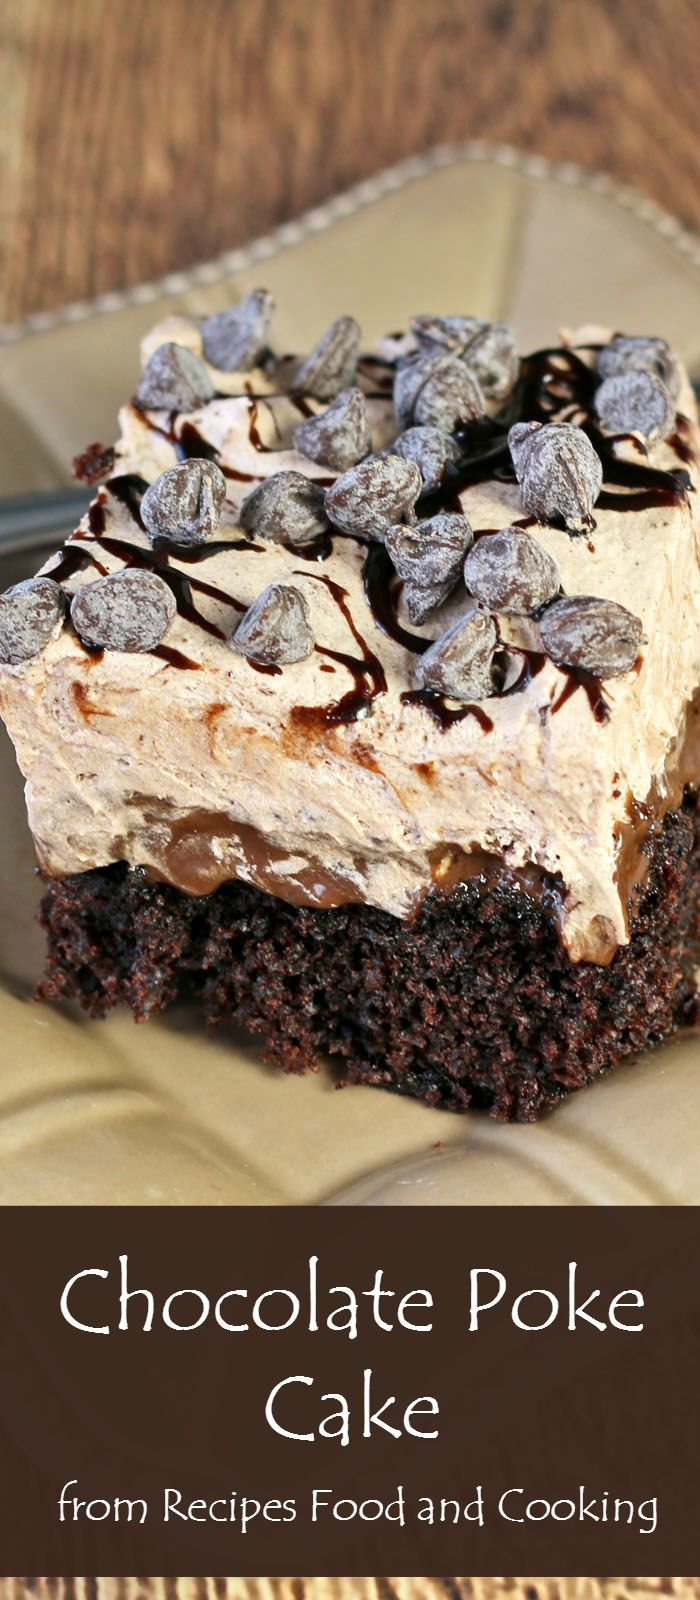 Chocolate Poke Cake With Cream Cheese Frosting